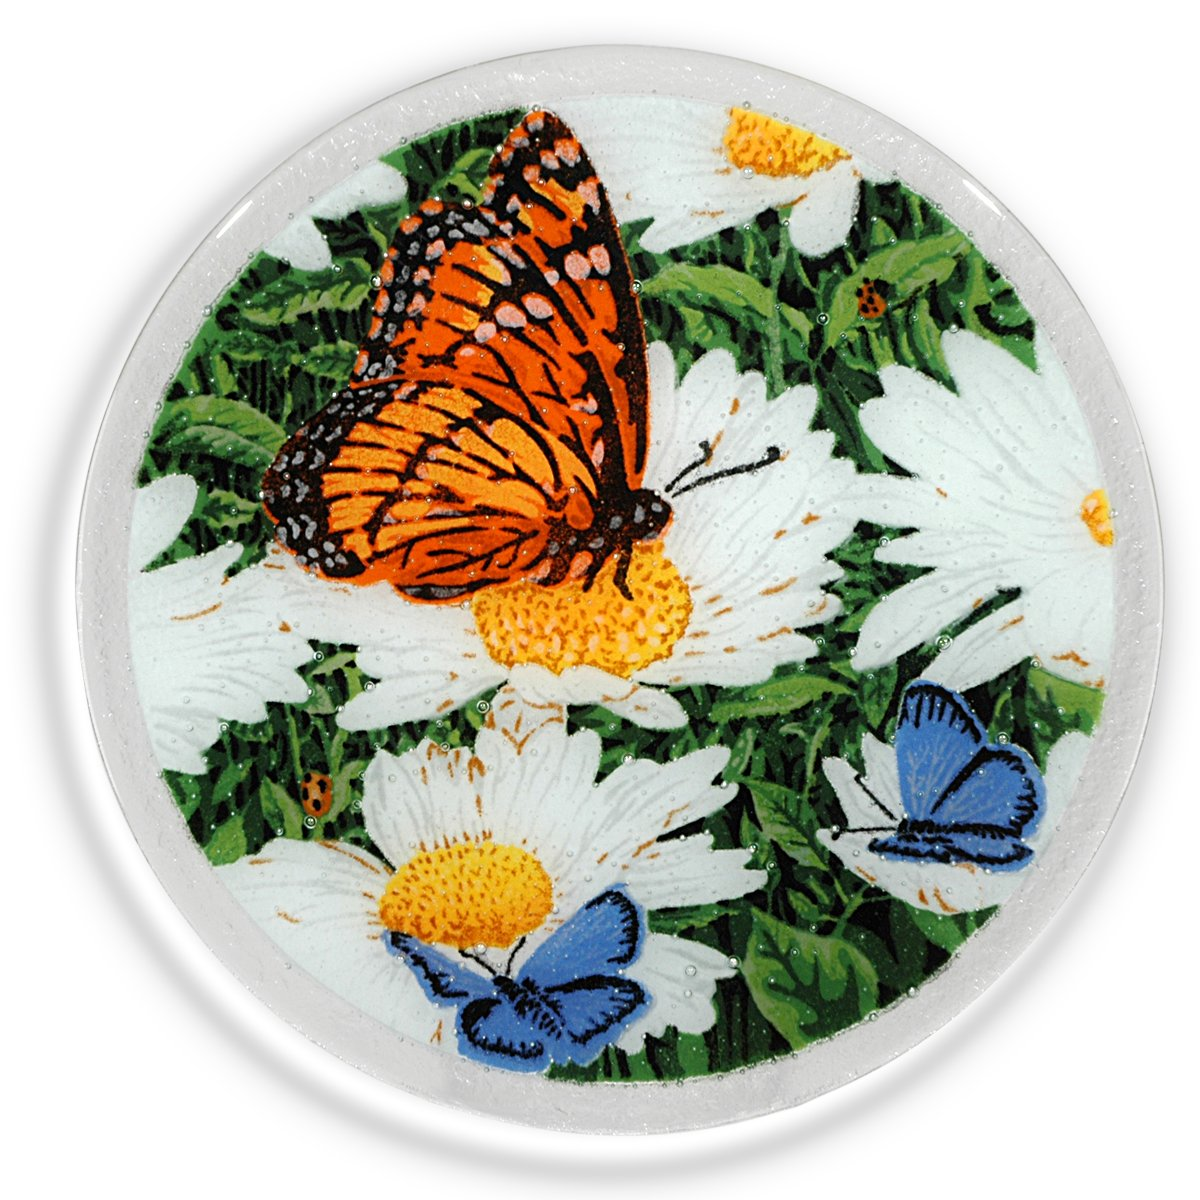 Peggy Karr Glass Handcrafted Art Glass Daisies and Butterflies 11'' Round Plate, Multicolor Floral Design by Peggy Karr